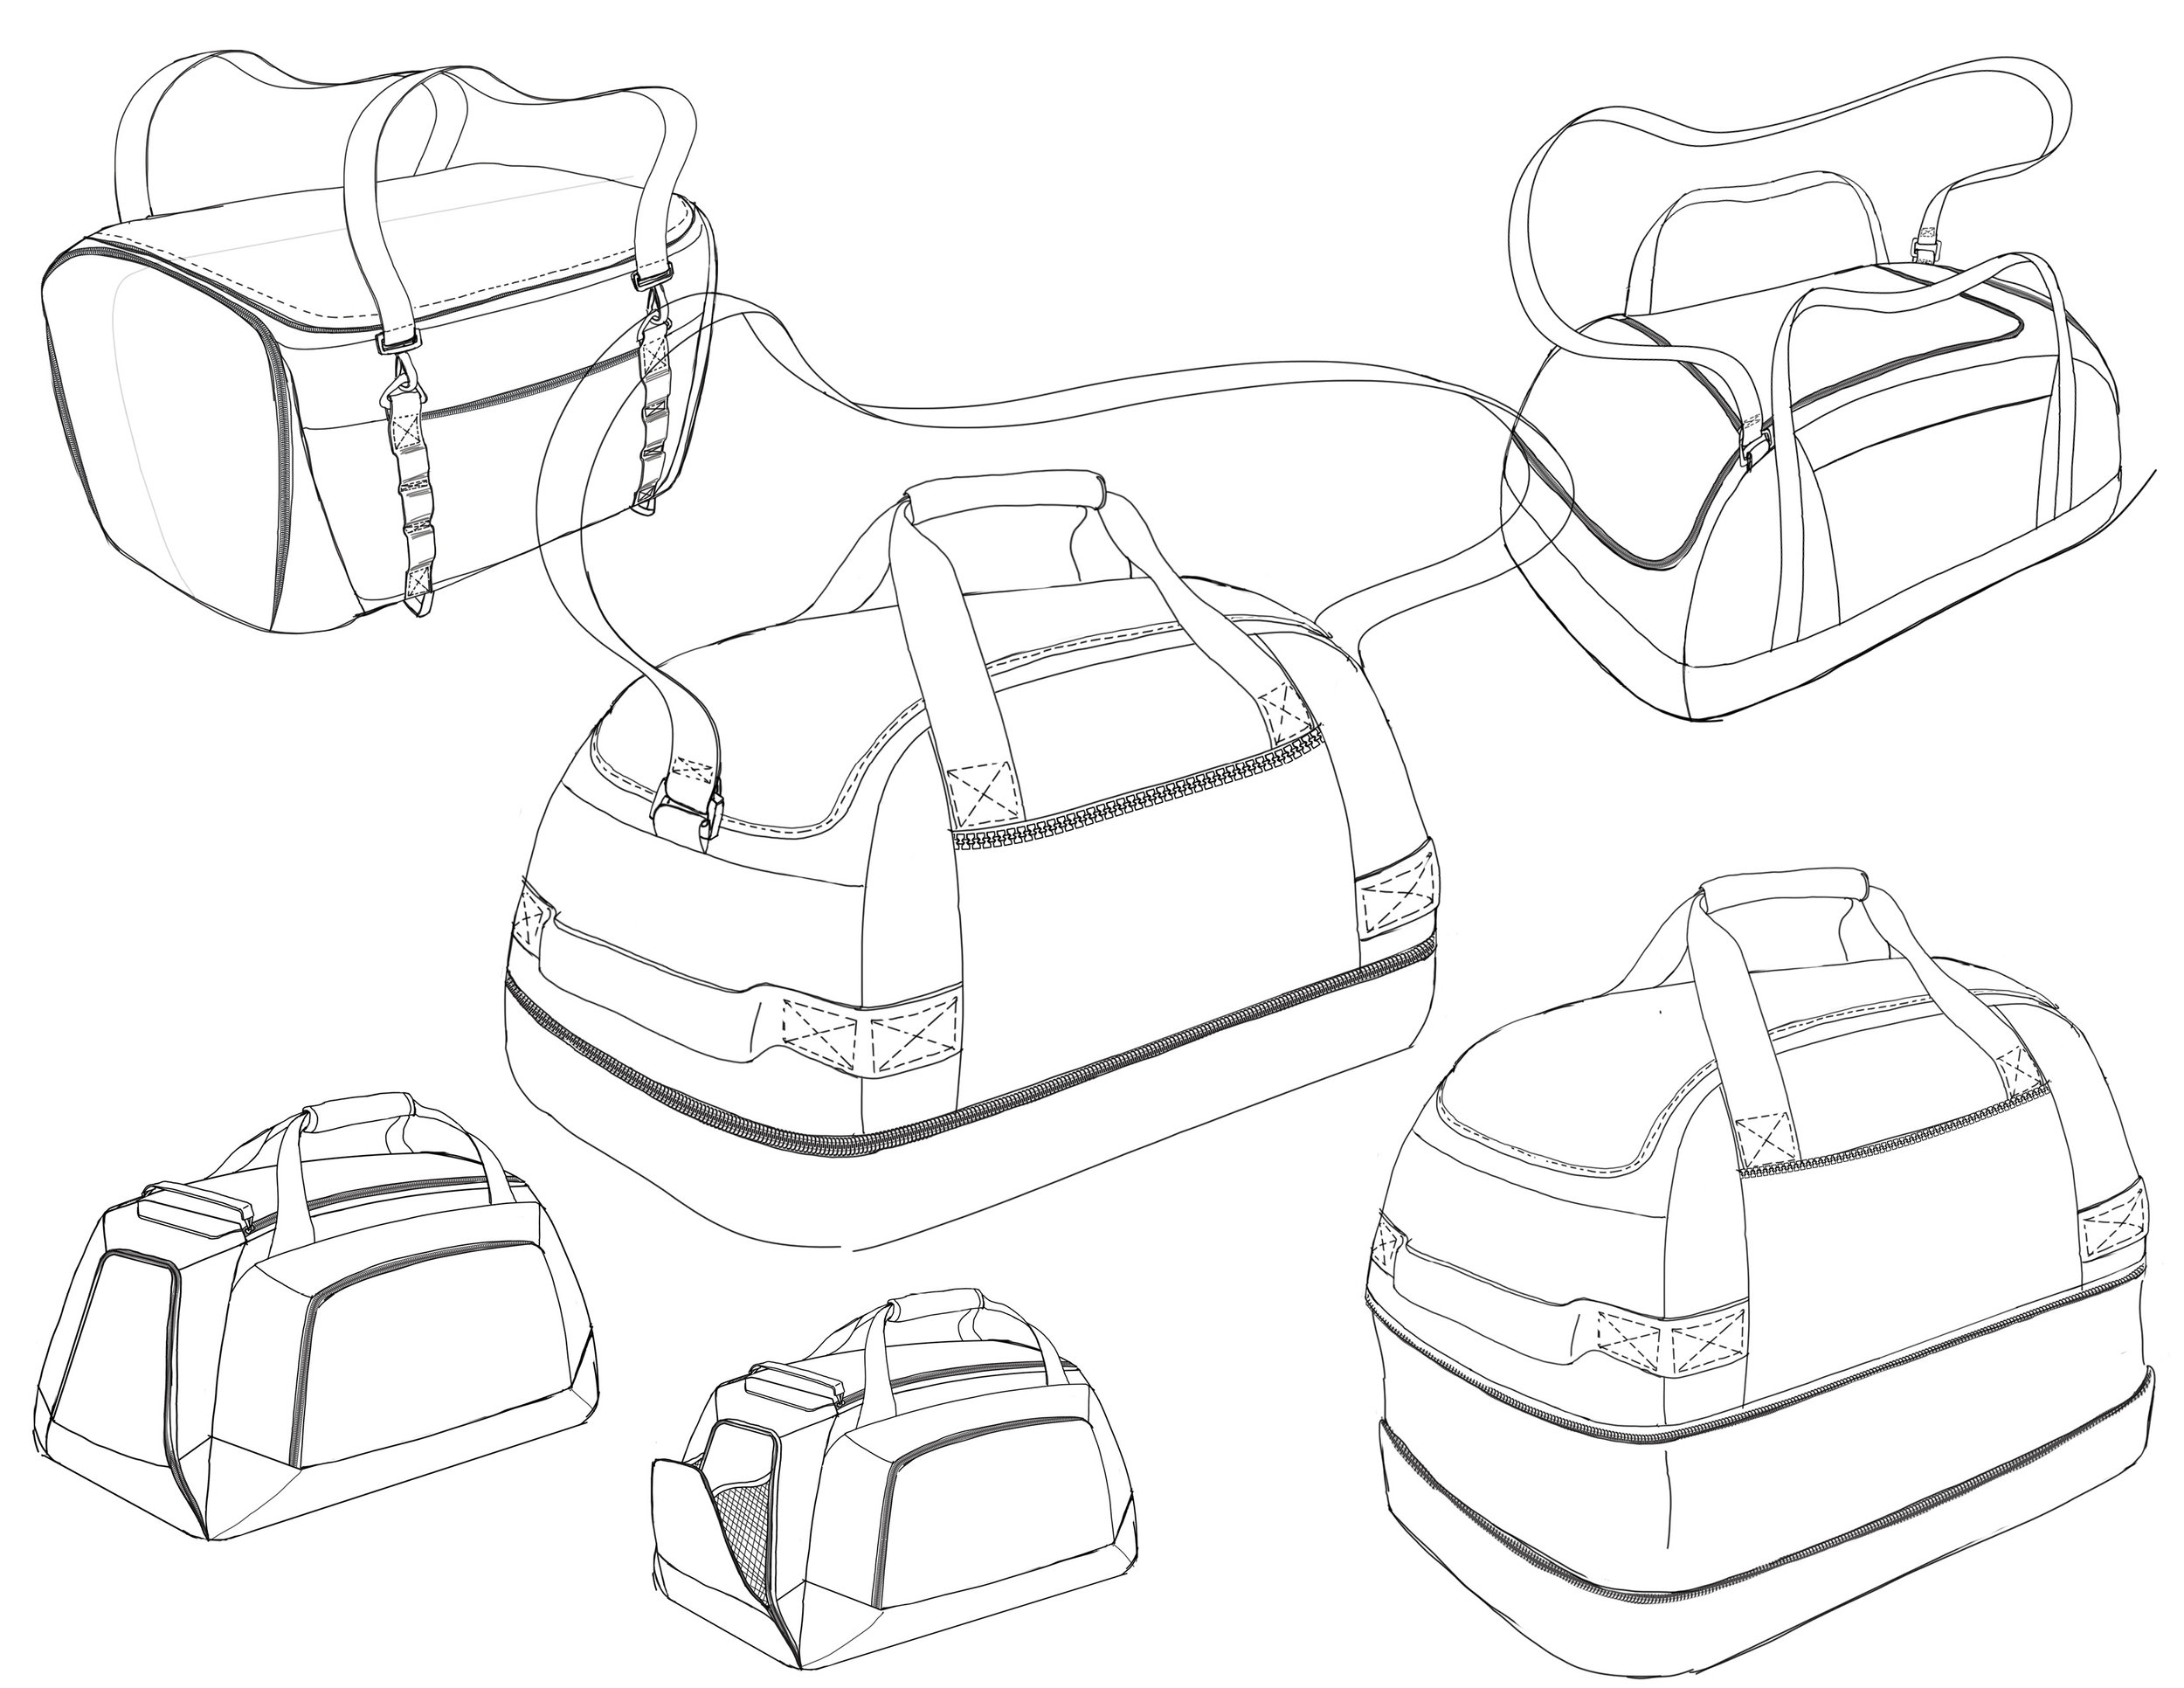 Initial sketches explore different functionality and adaptability.